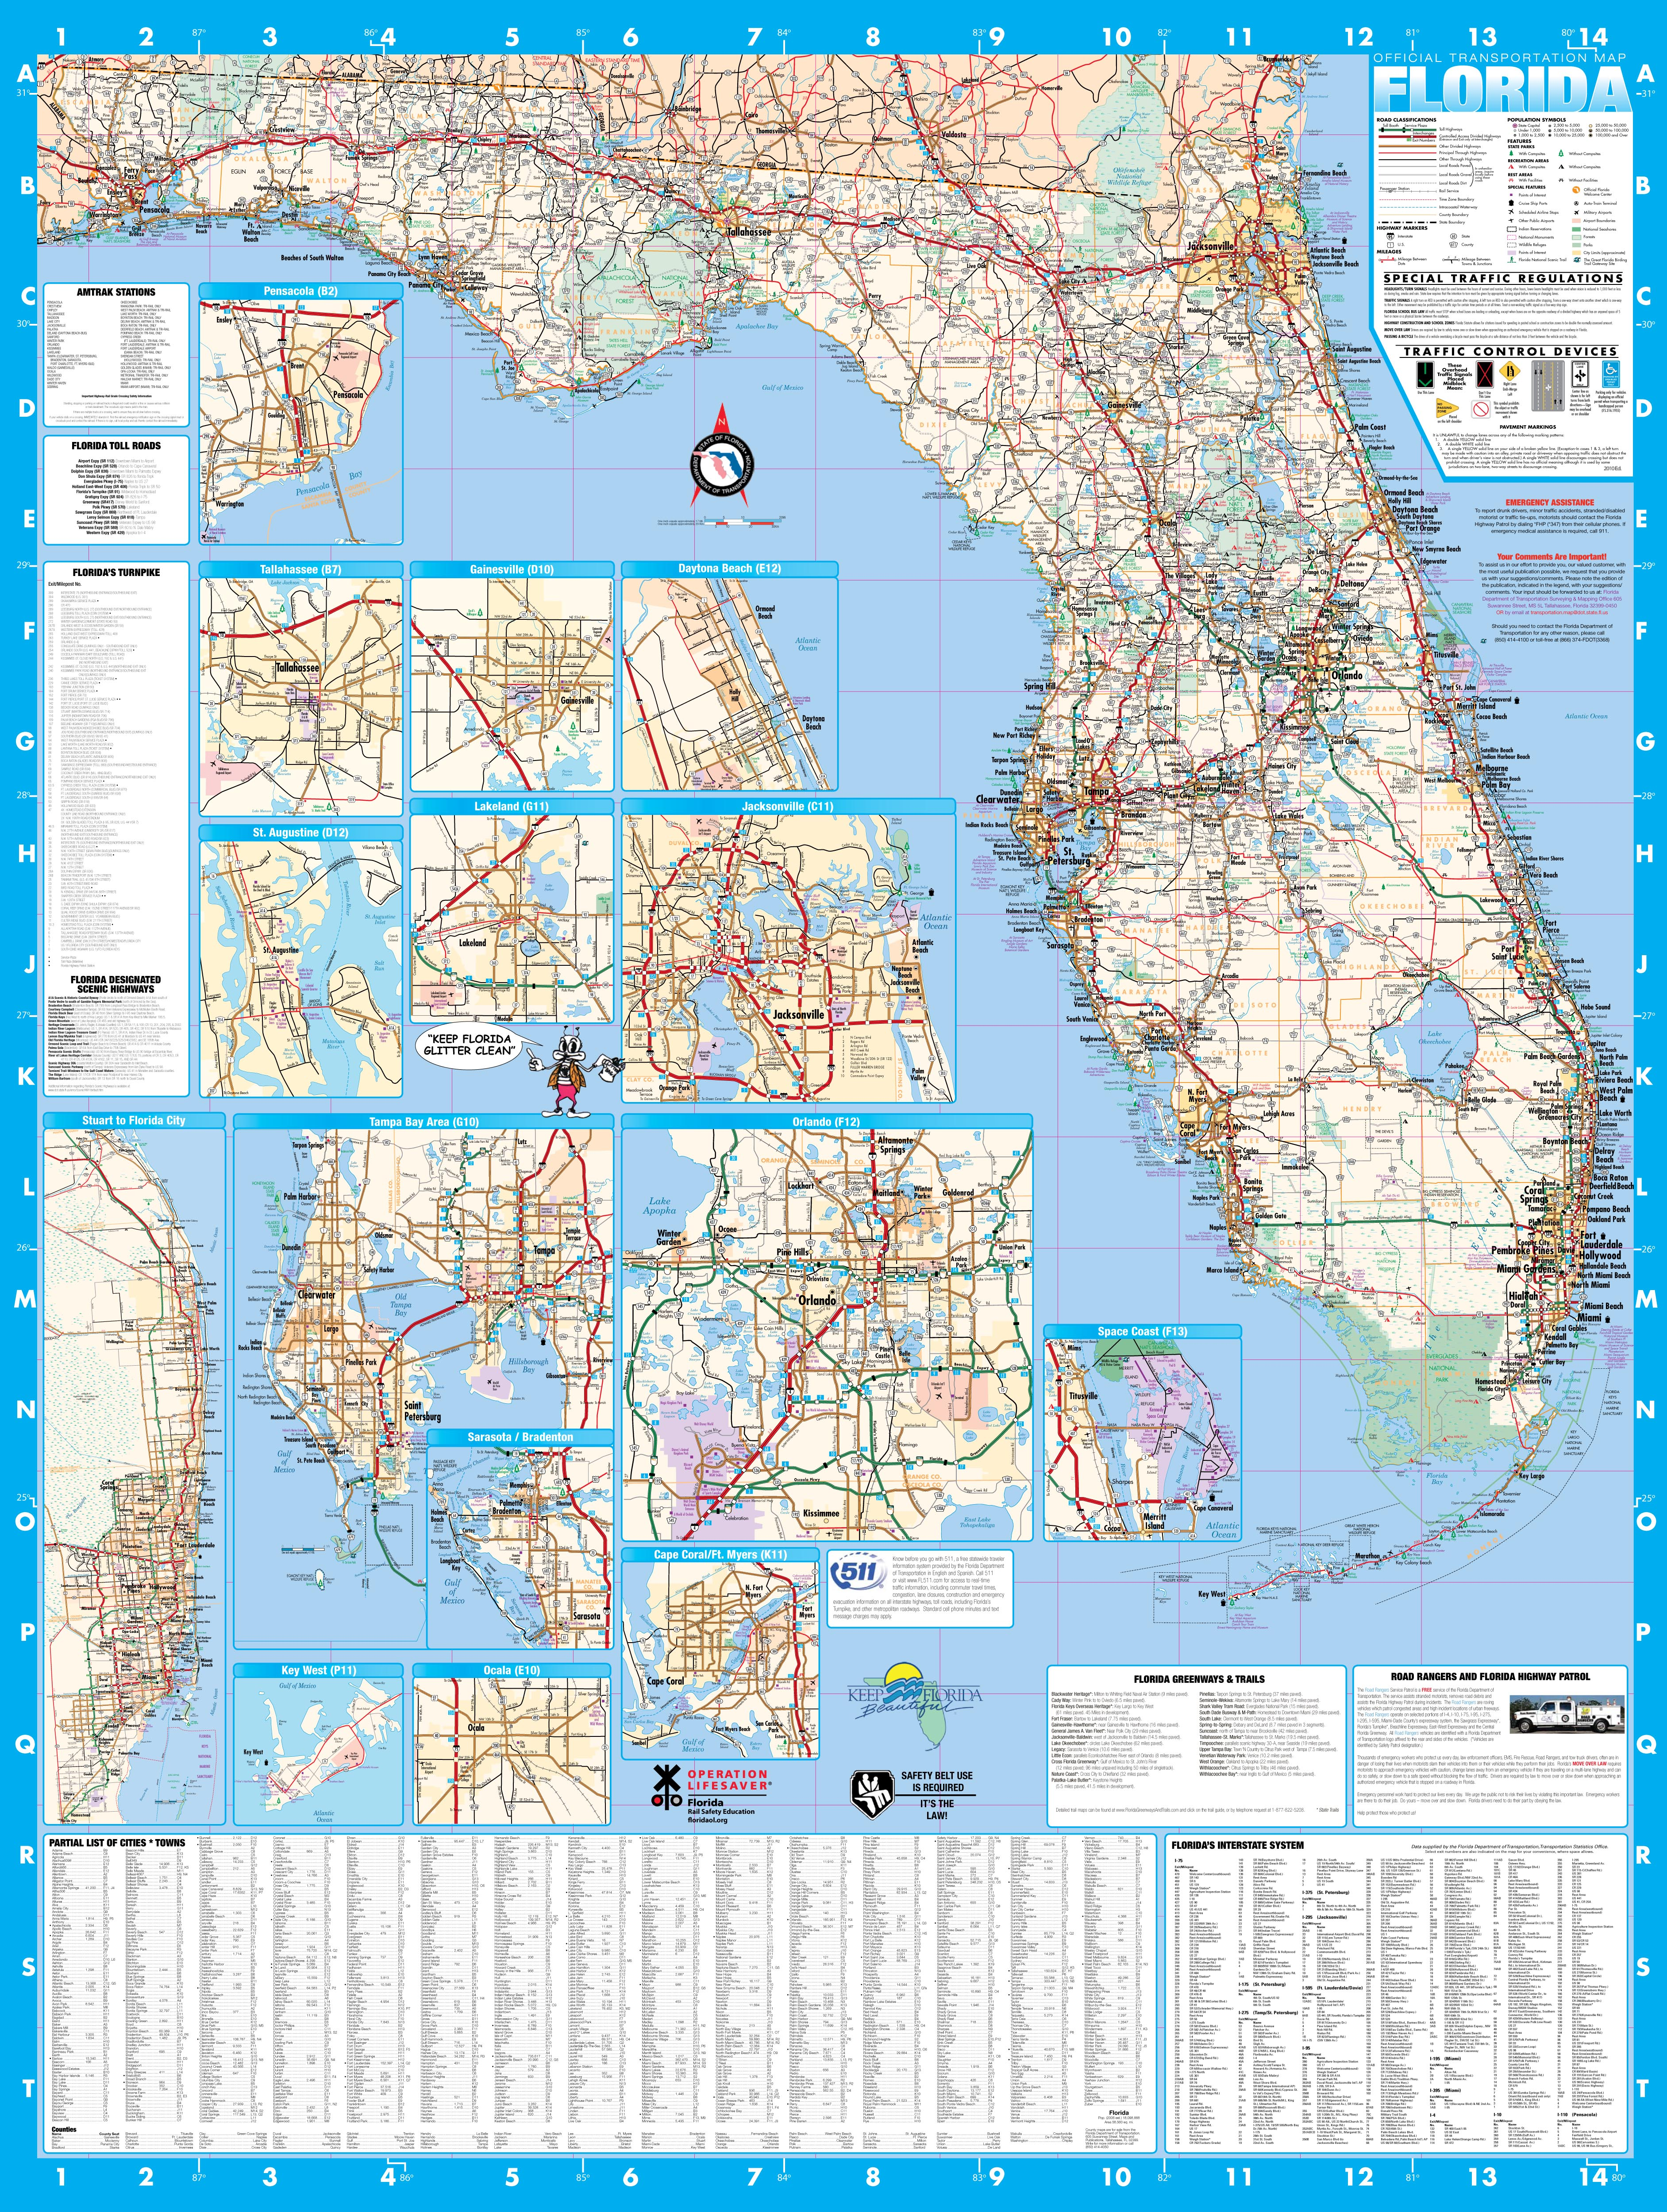 Large Map Of Florida.Florida Wall Map Executive Commercial Edition